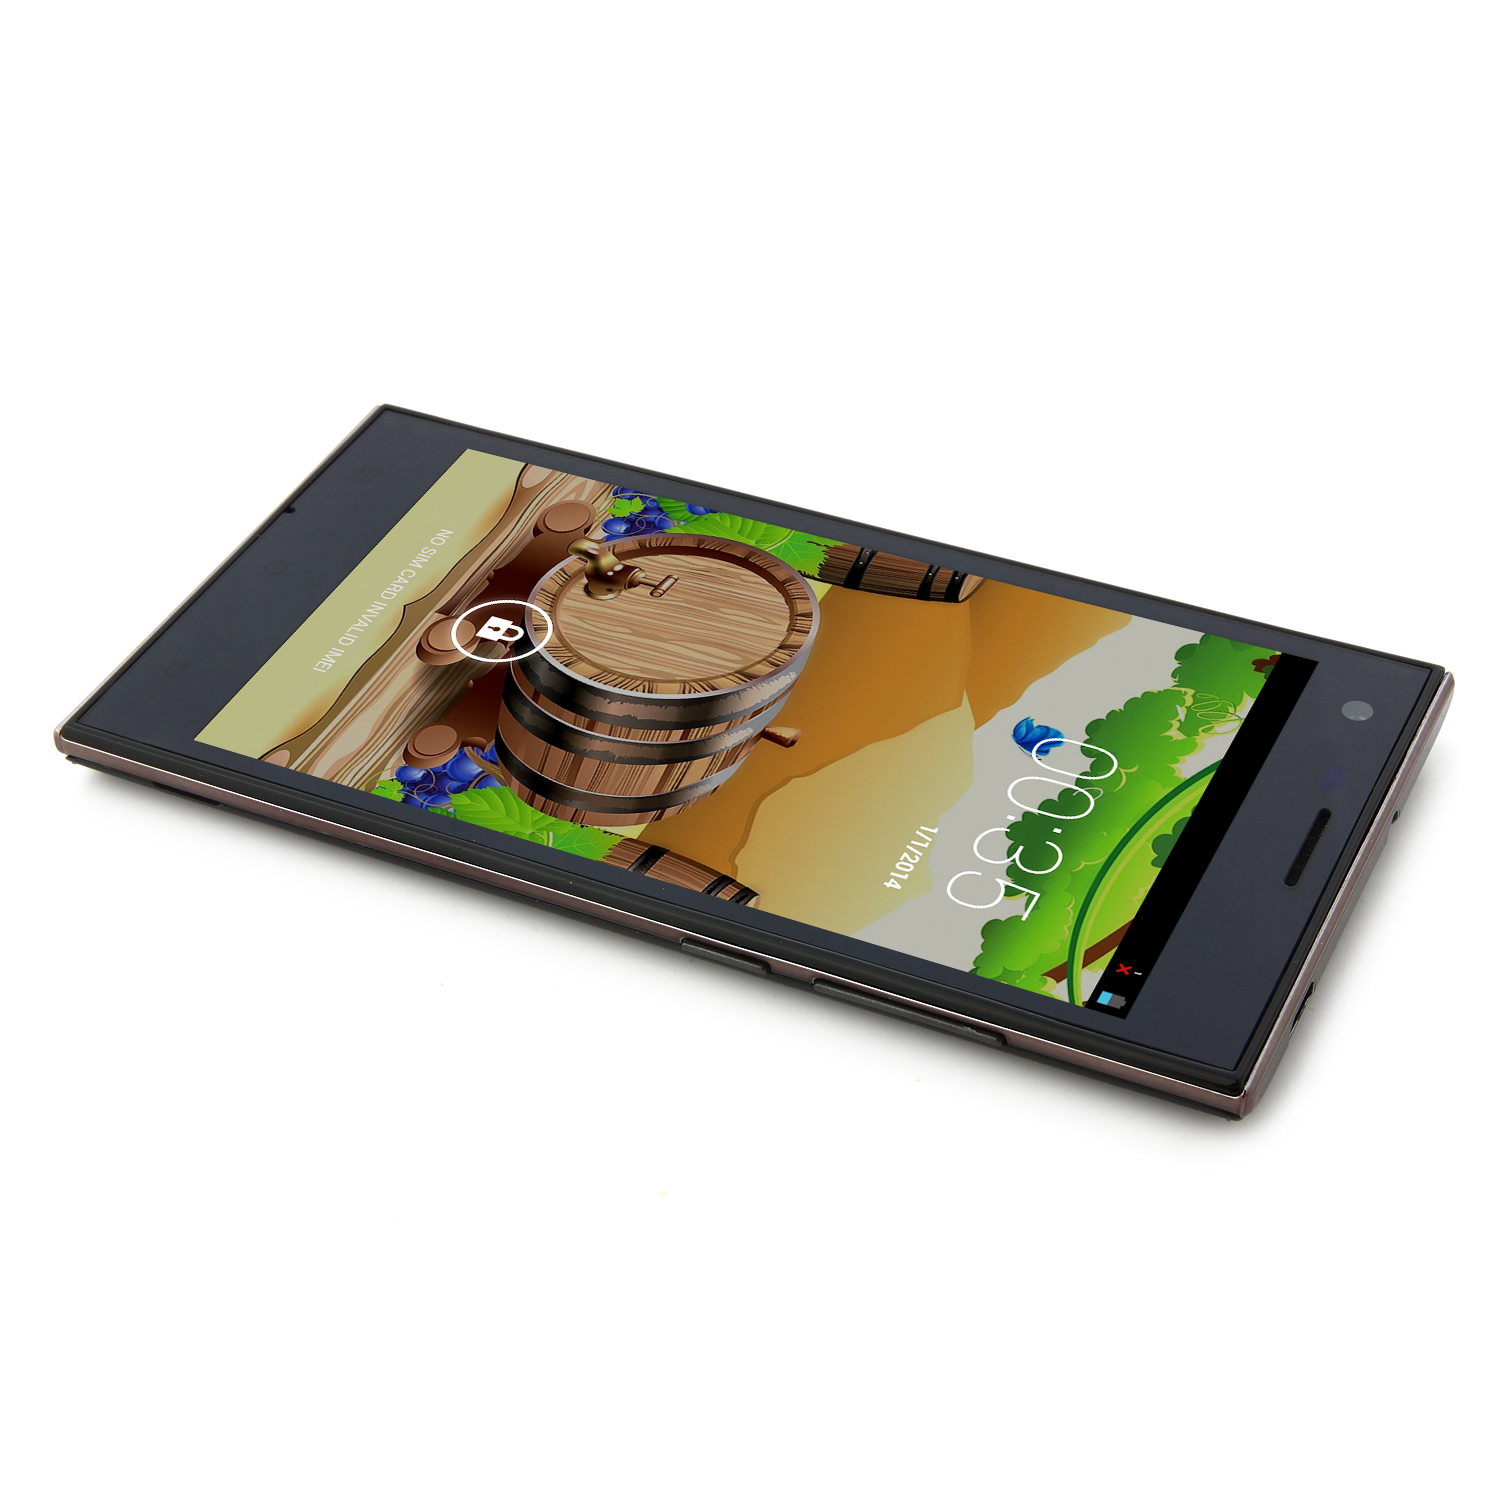 Cubot S308 Smartphone 2GB 16GB MTK6582 Android 4.4 5.0 Inch HD OGS Screen